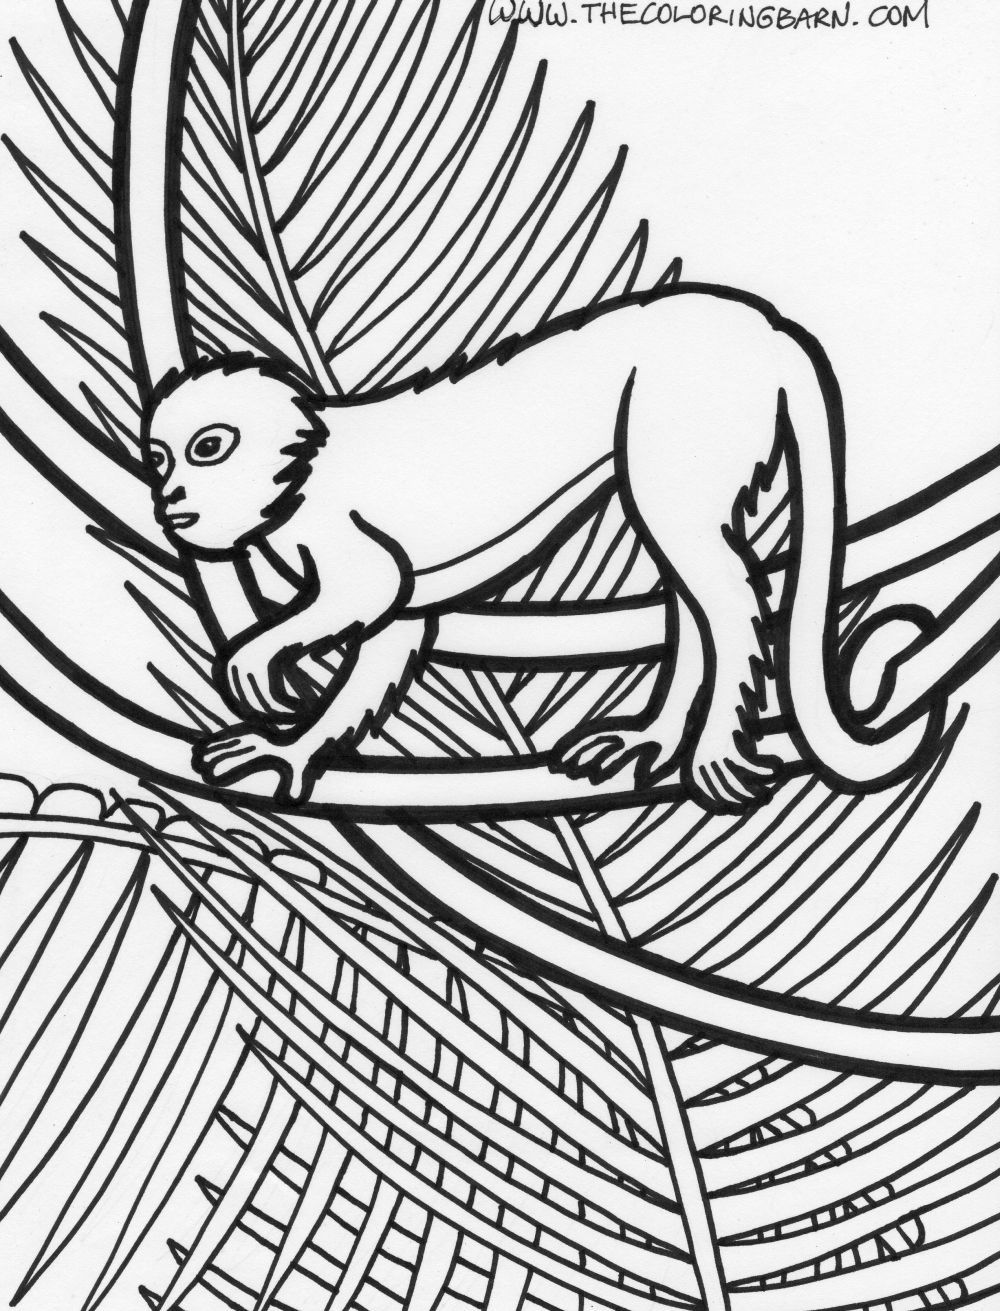 rainforest plants coloring pages page rainforest monkey coloring page rainforest gorilla coloring page